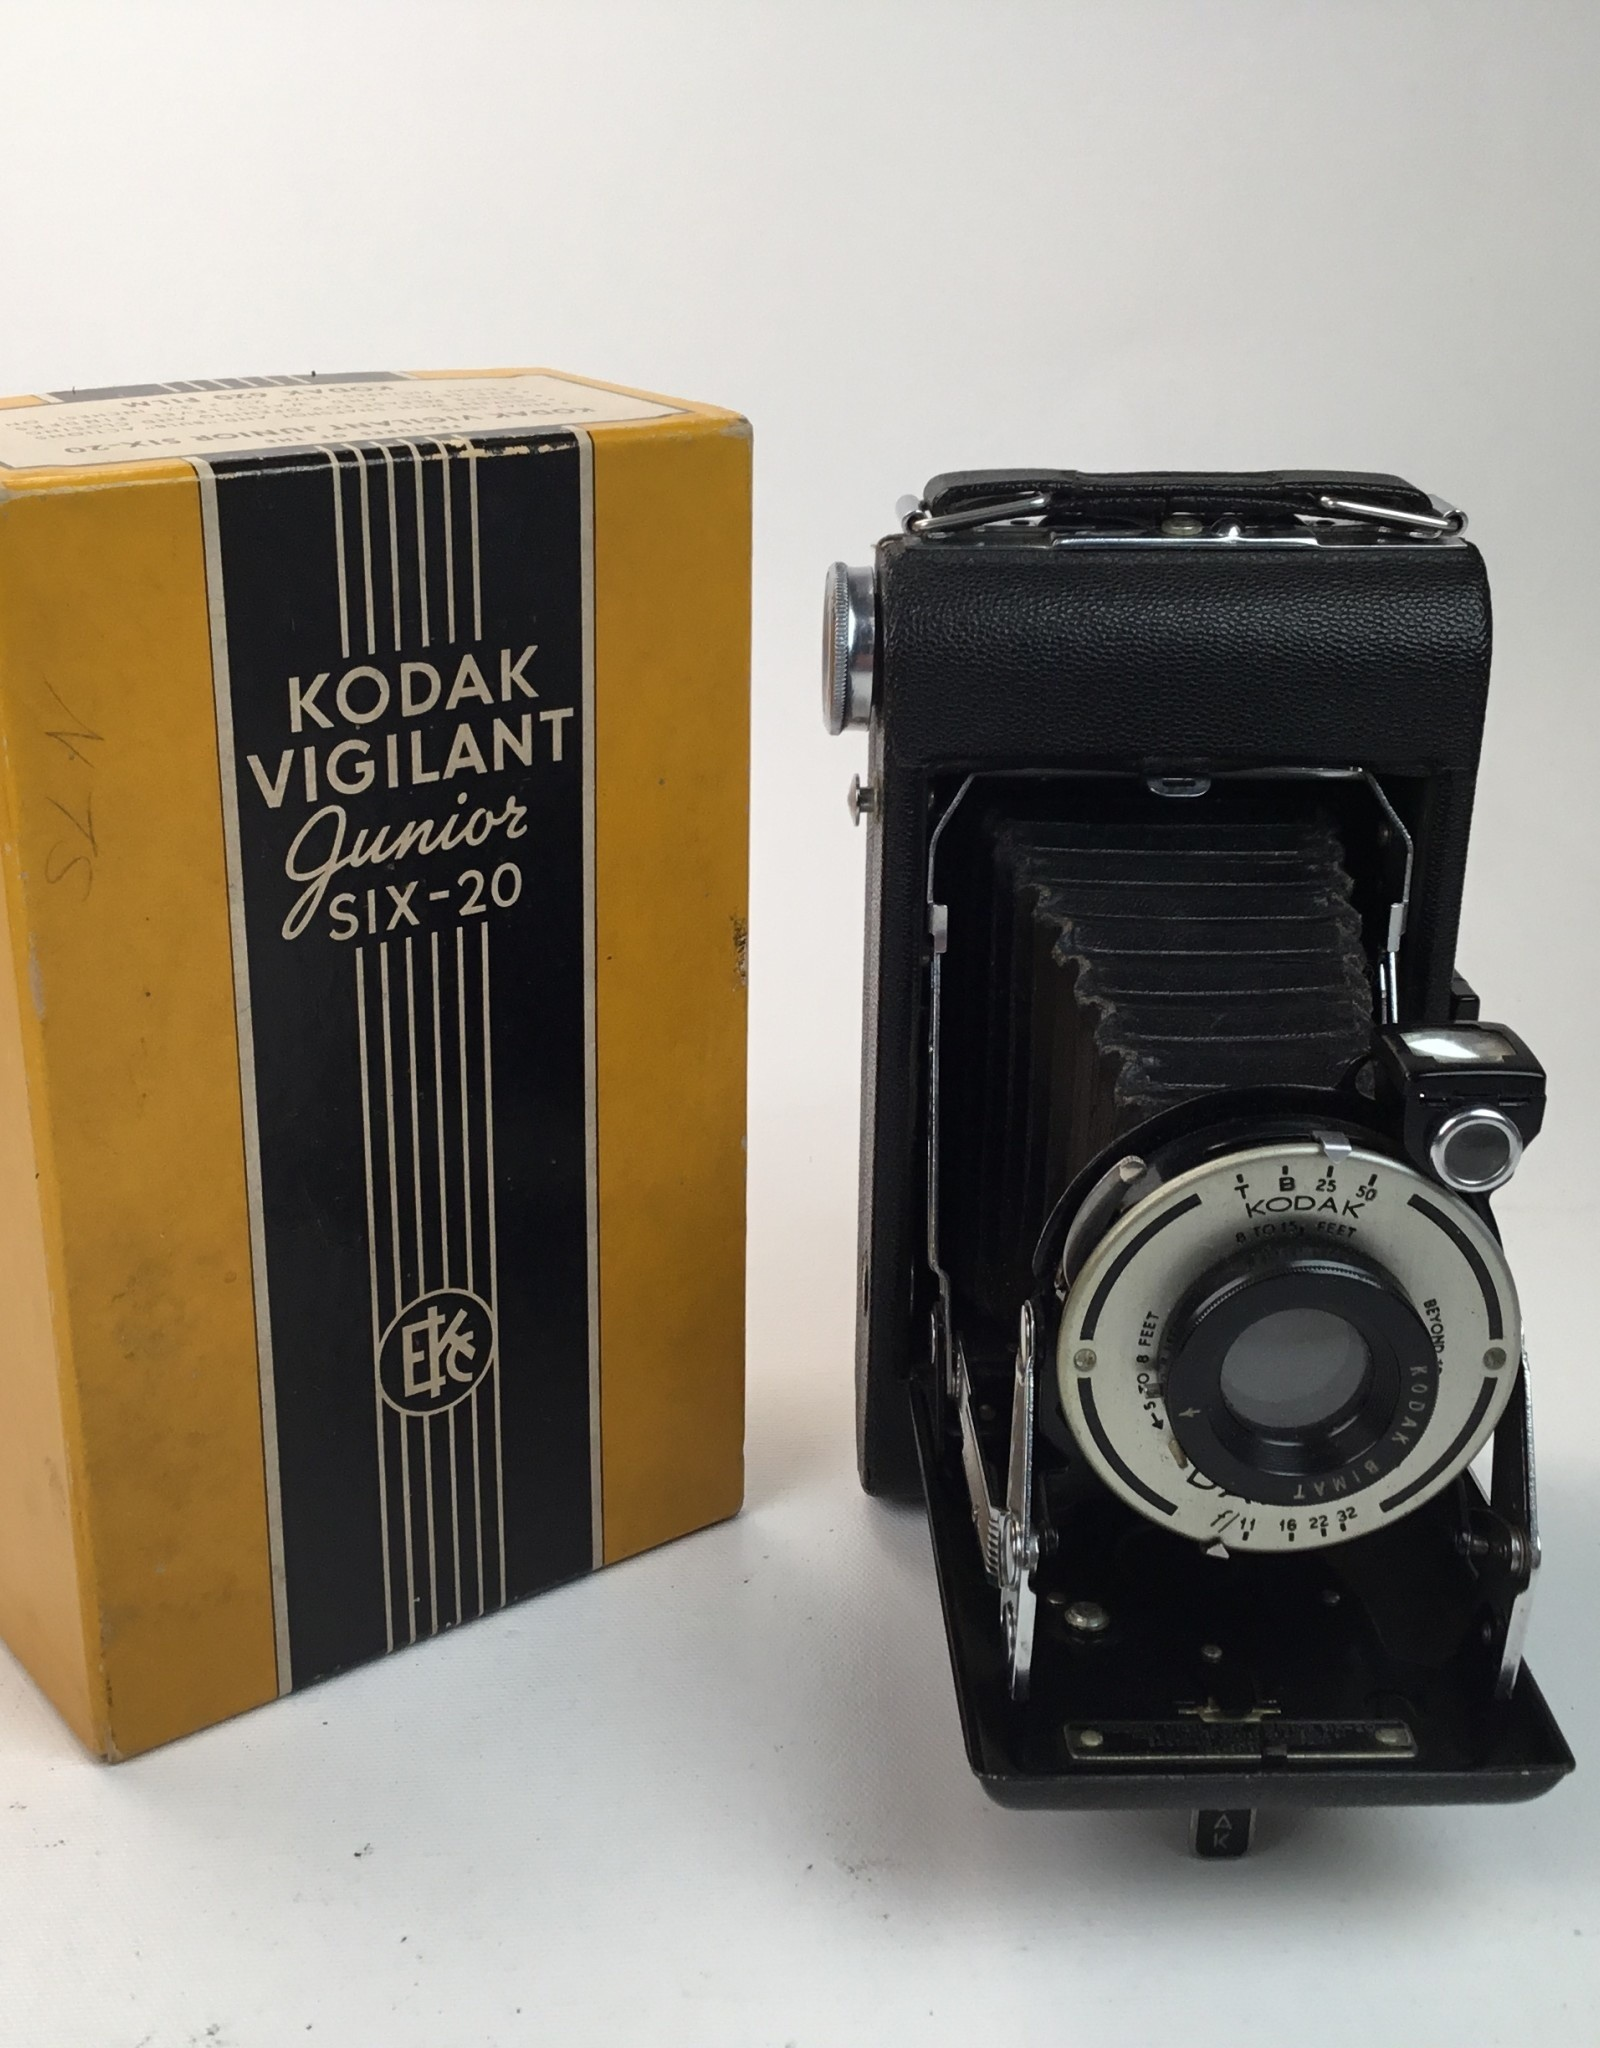 Kodak Vigilant Junior Six 20 Camera in Box Used Non Functioning